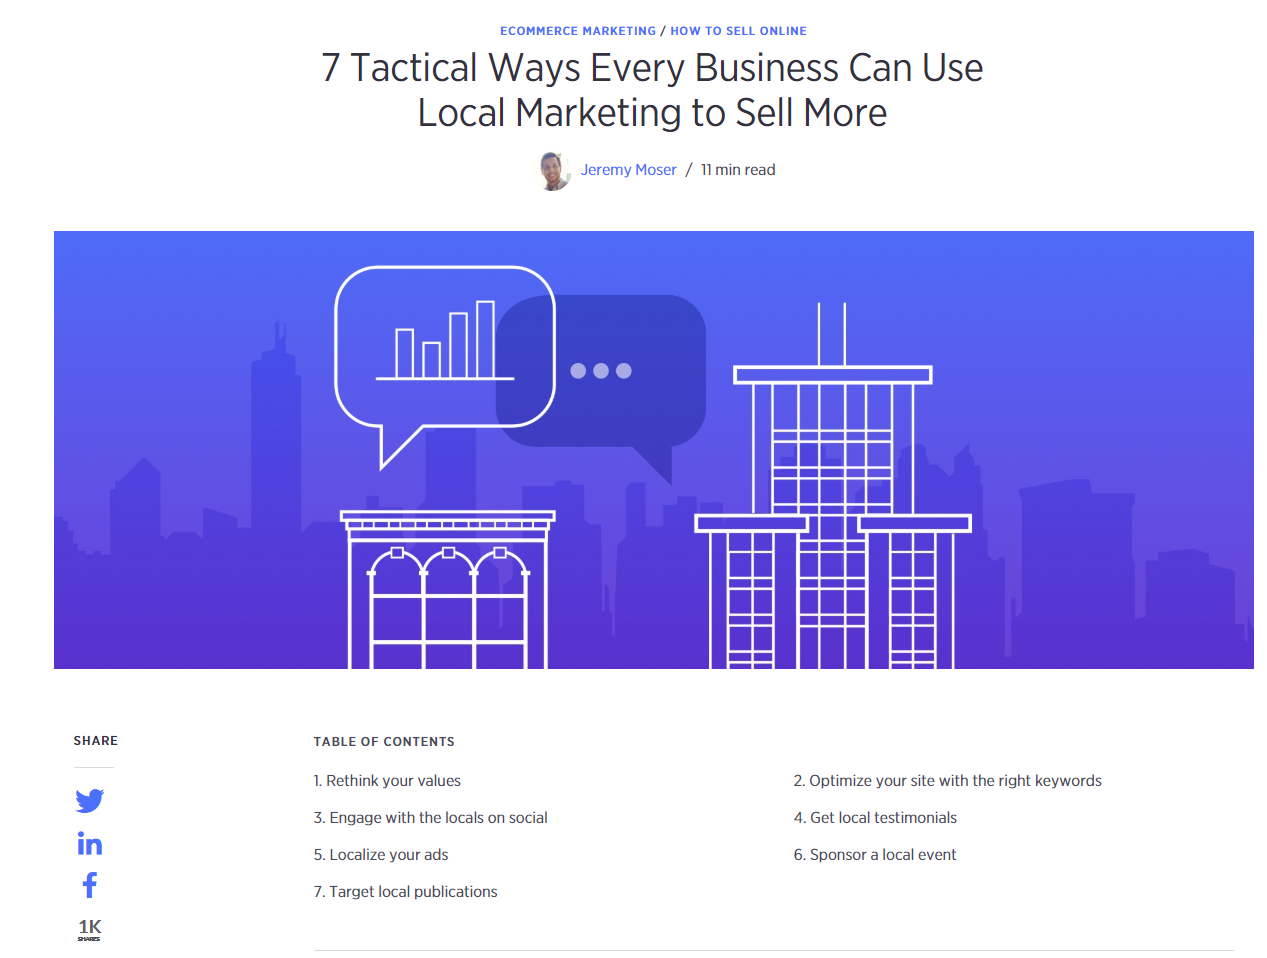 7-Tactical-Ways-Every-Business-Can-Use-Local-Marketing